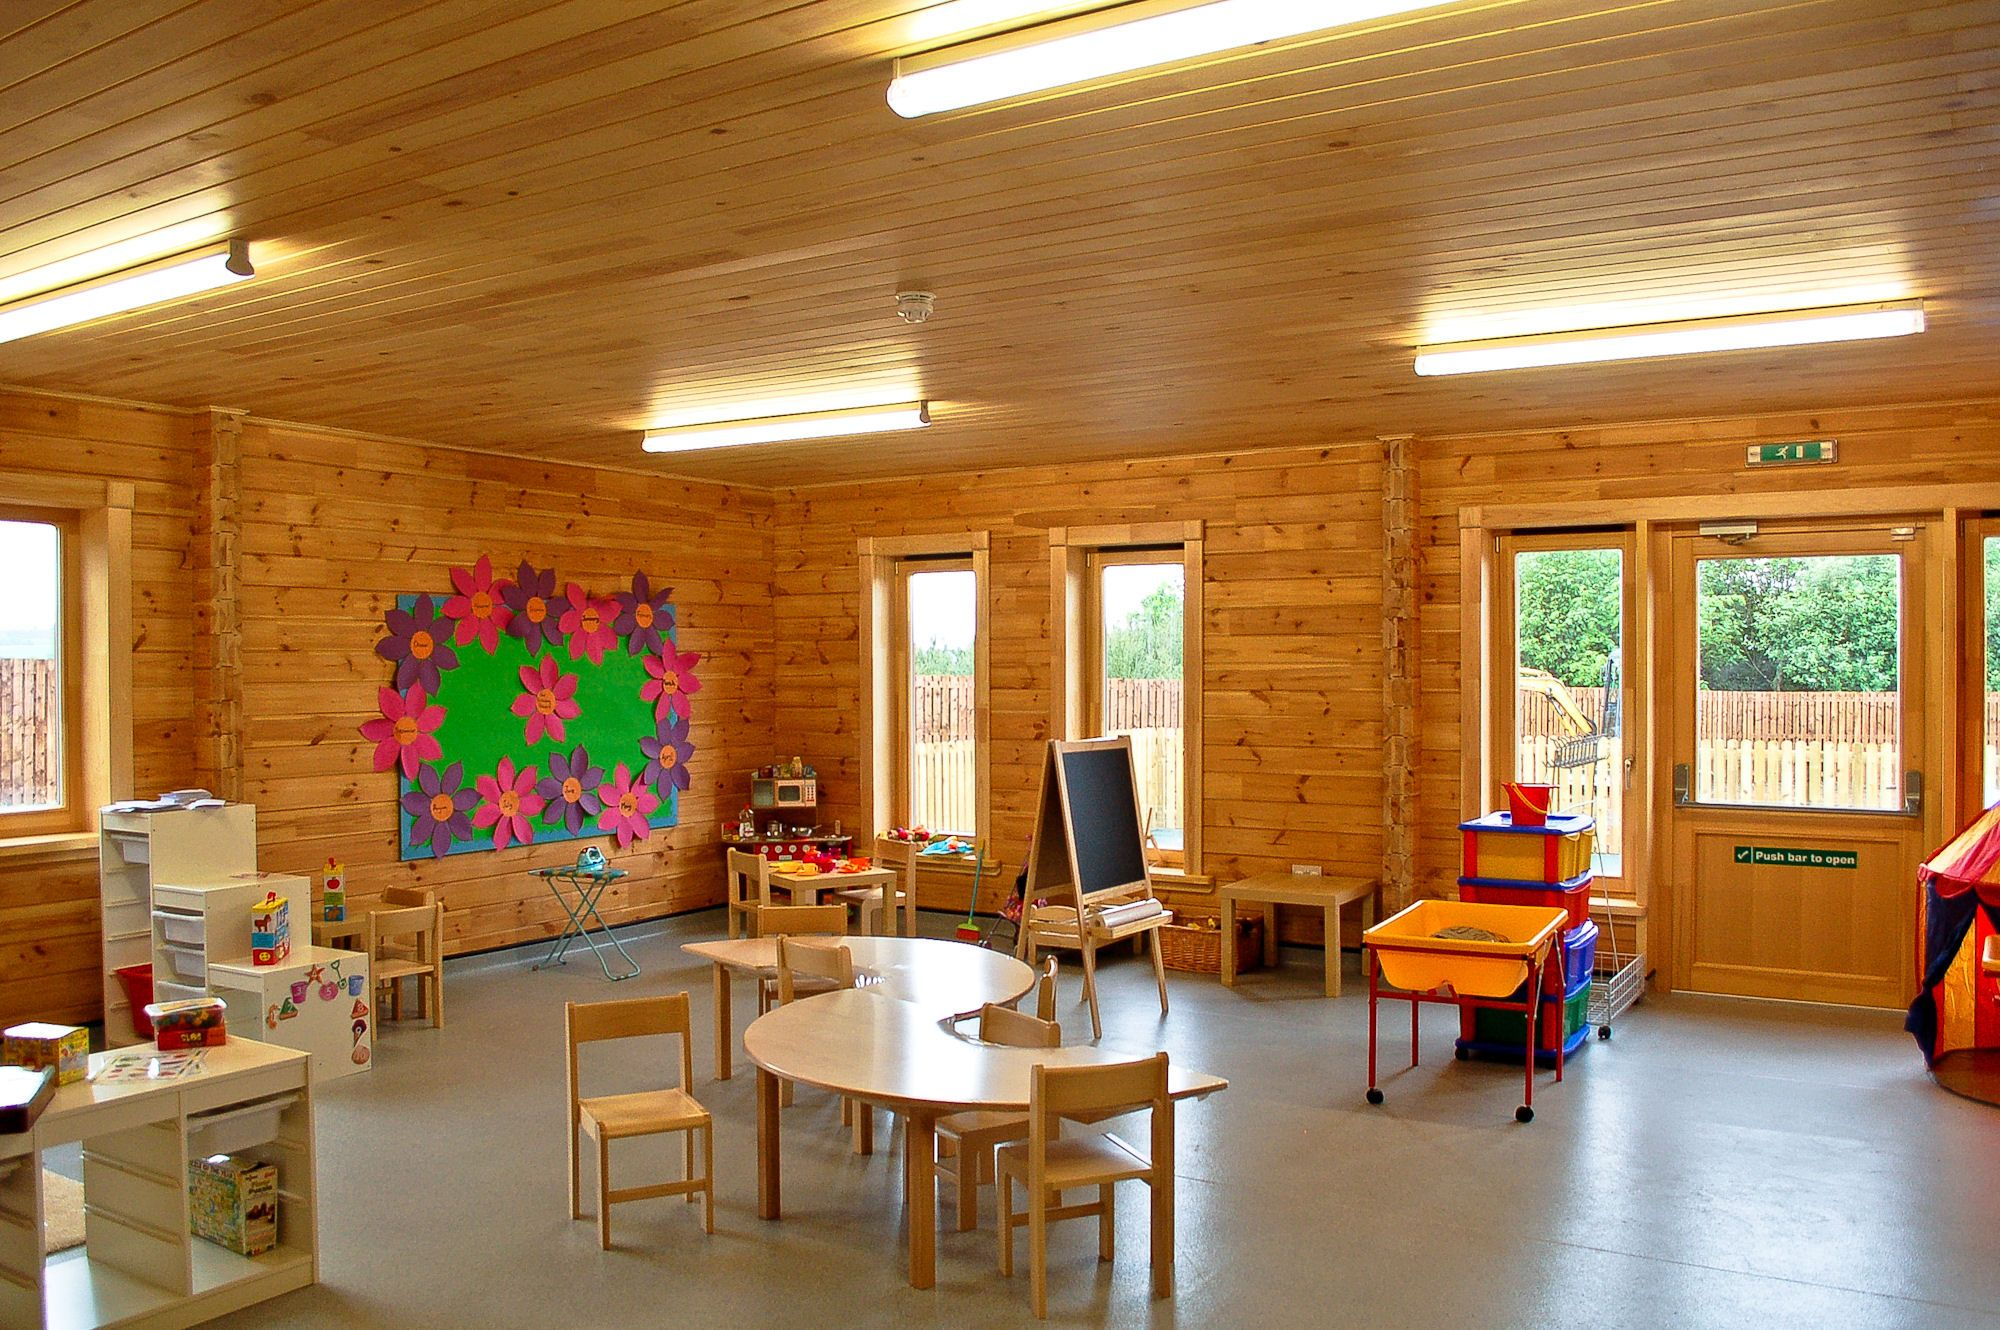 Fenton Barns Nursery, North Berwick, by LAT-Lodge Ltd ...